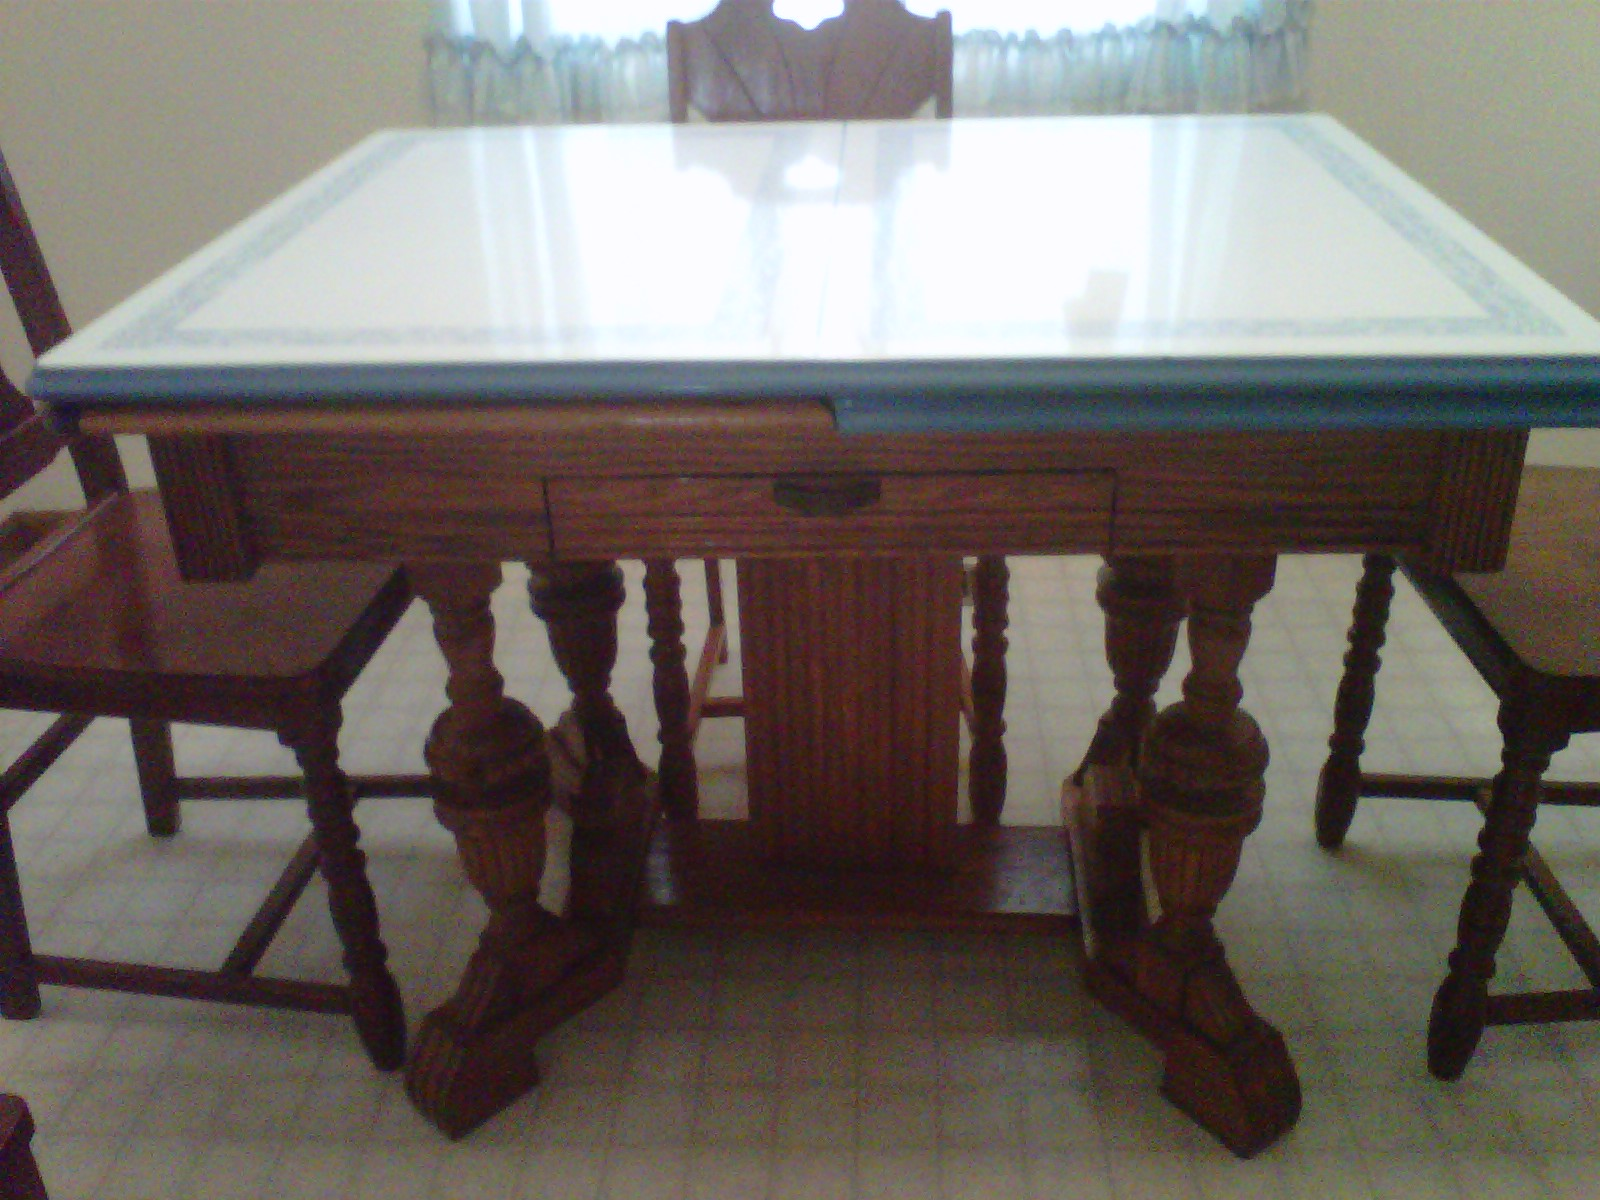 1930s Benjamine Crysteel Enamal Top Table with Chairs For